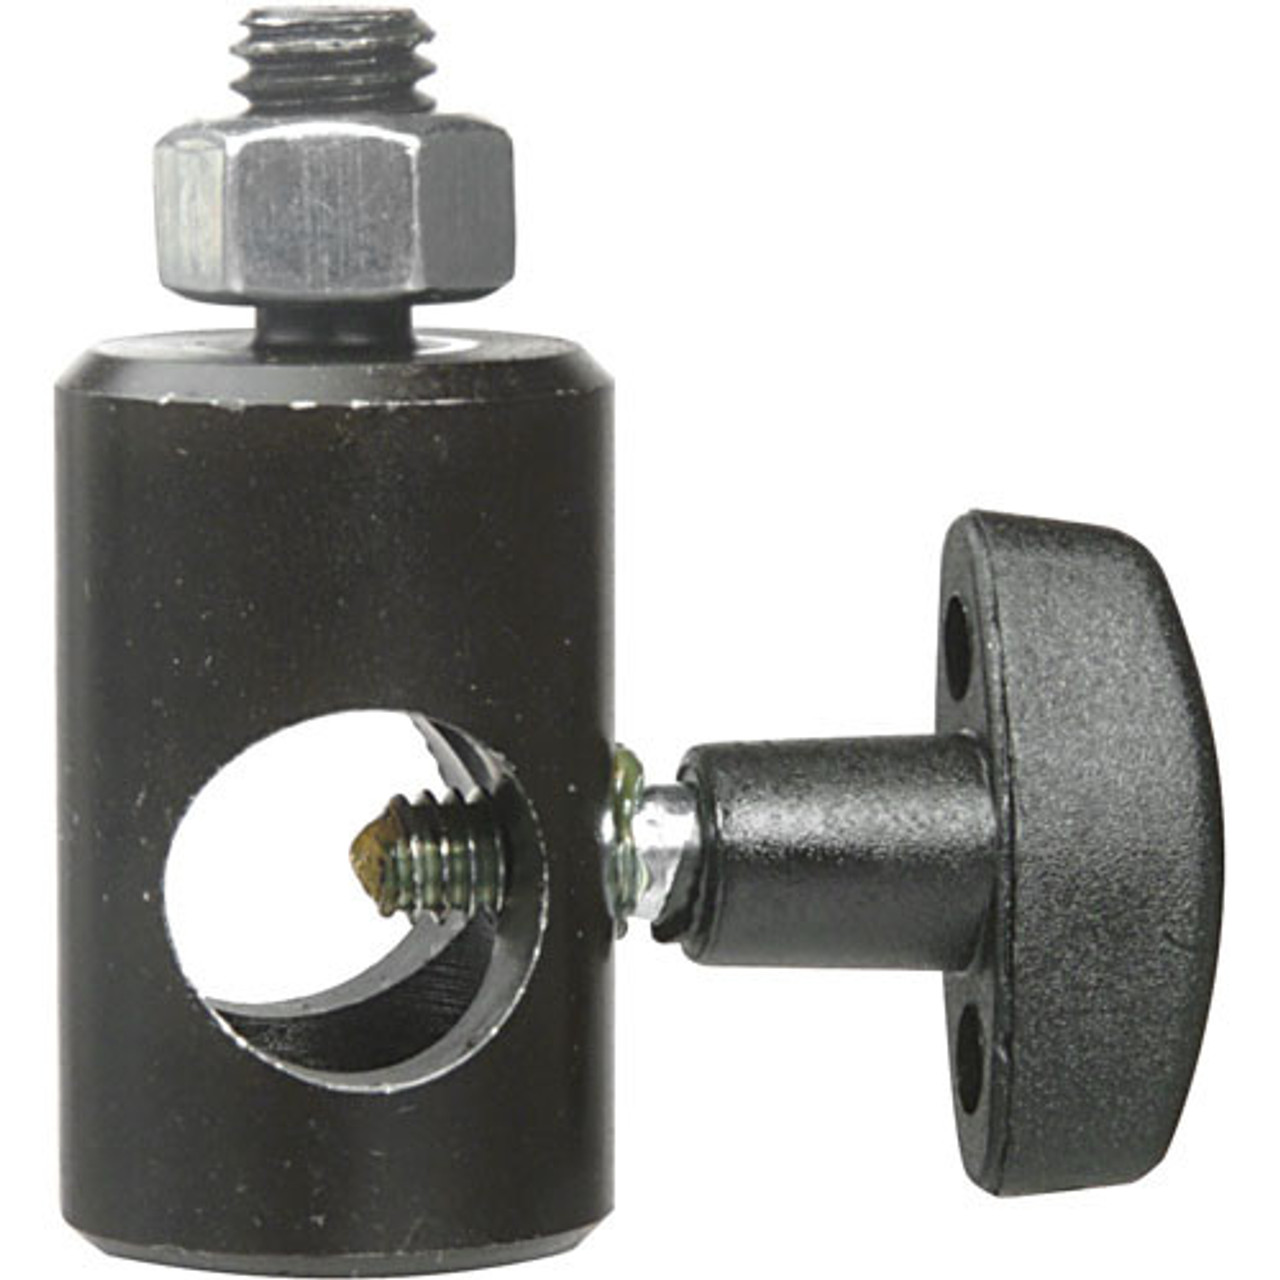 """Manfrotto Rapid Adapter: 1/4""""20 Thread    ."""